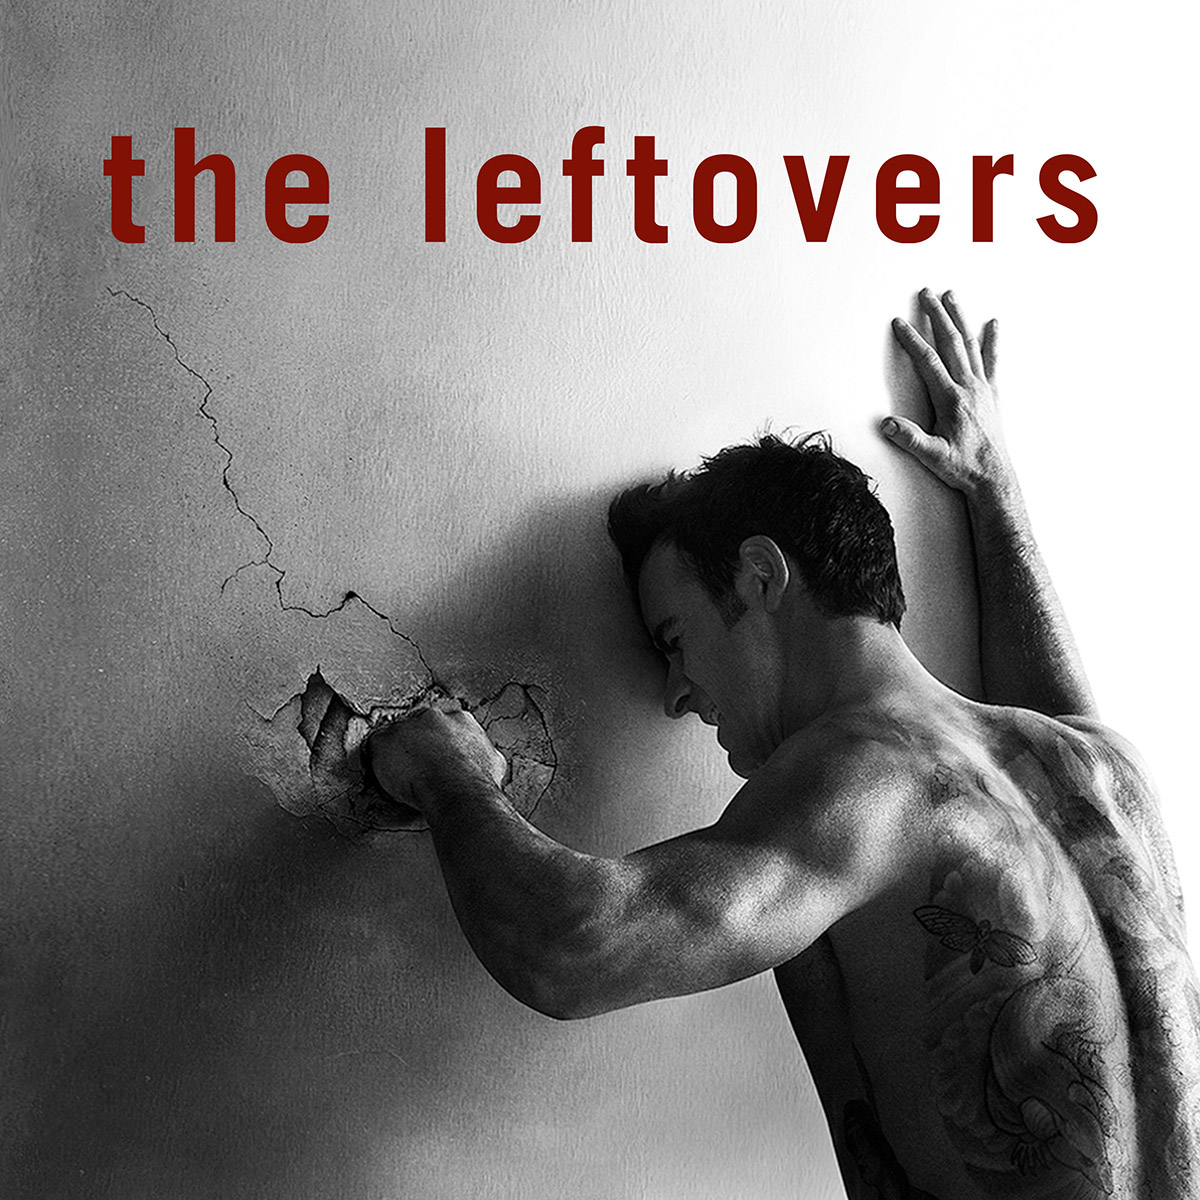 The Leftovers Hbo Promos Television Promos